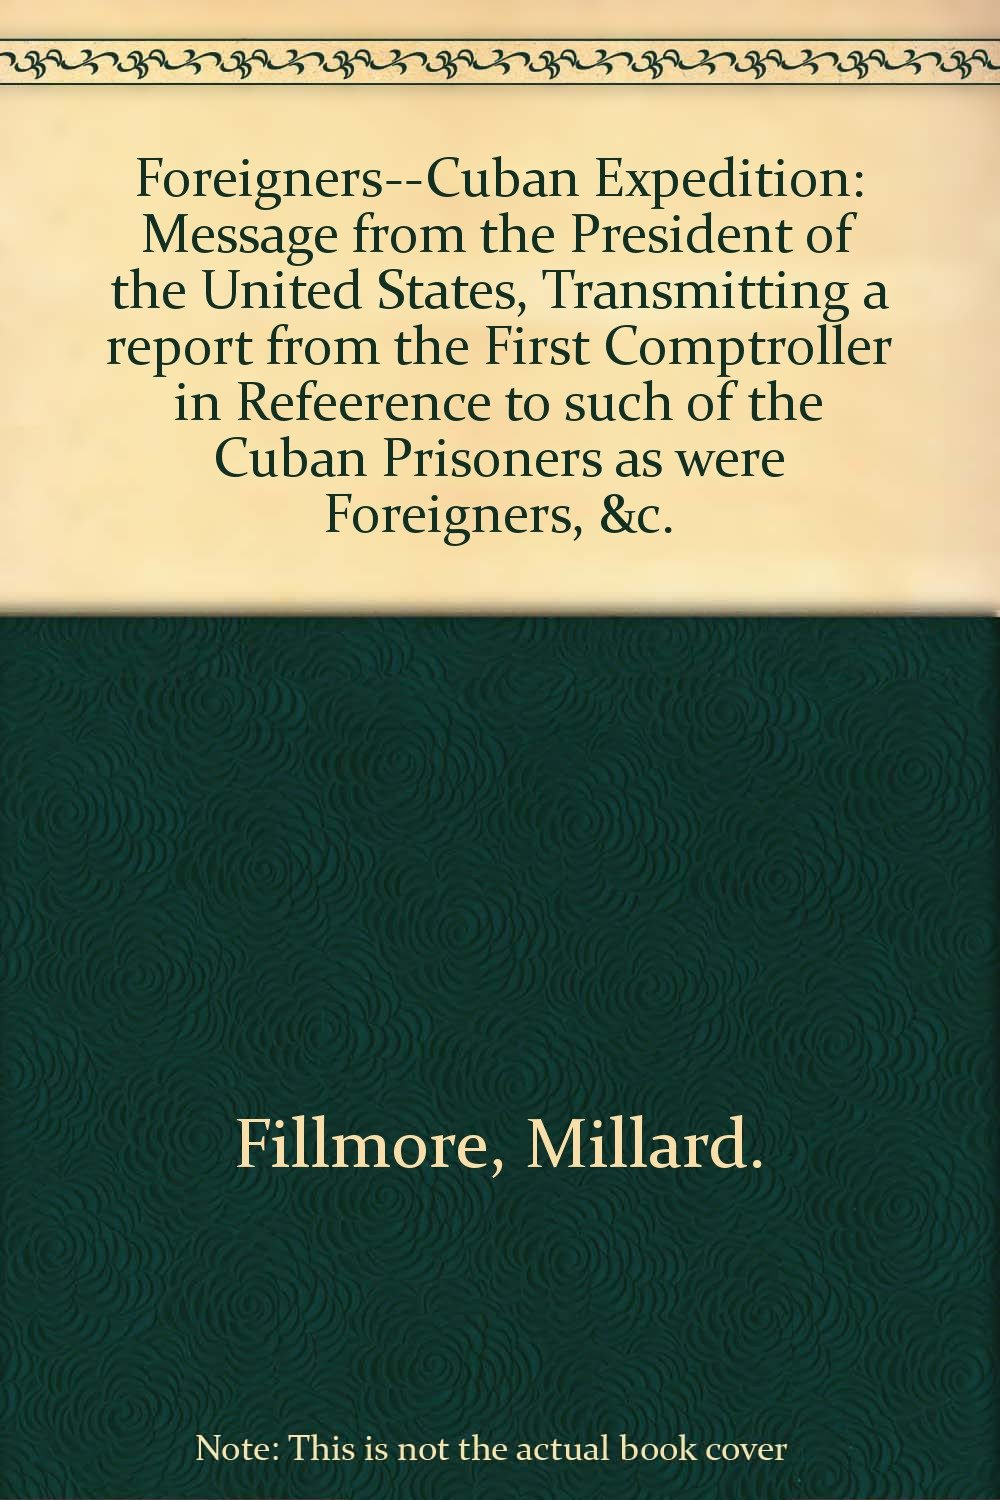 240fea1696 Foreigners - Cuban Expedition. Message ... transmitting A report from the  First Comptroller in reference to such of the Cuban prisoners as were  foreigners